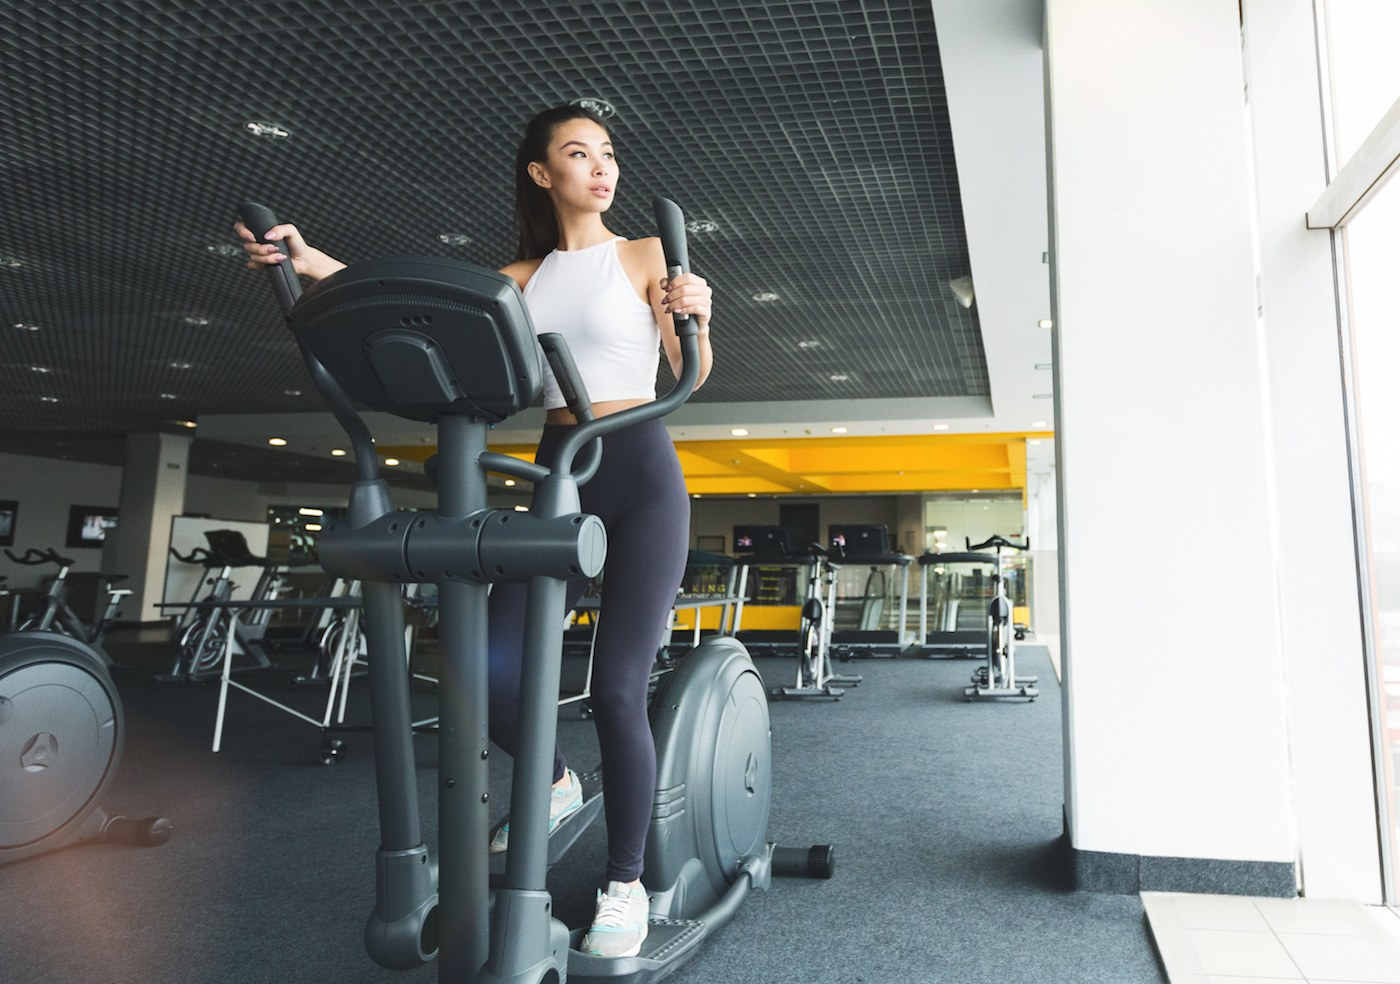 Thumbnail for 5 of the Most Common Mistakes Trainers See People Make on the Elliptical